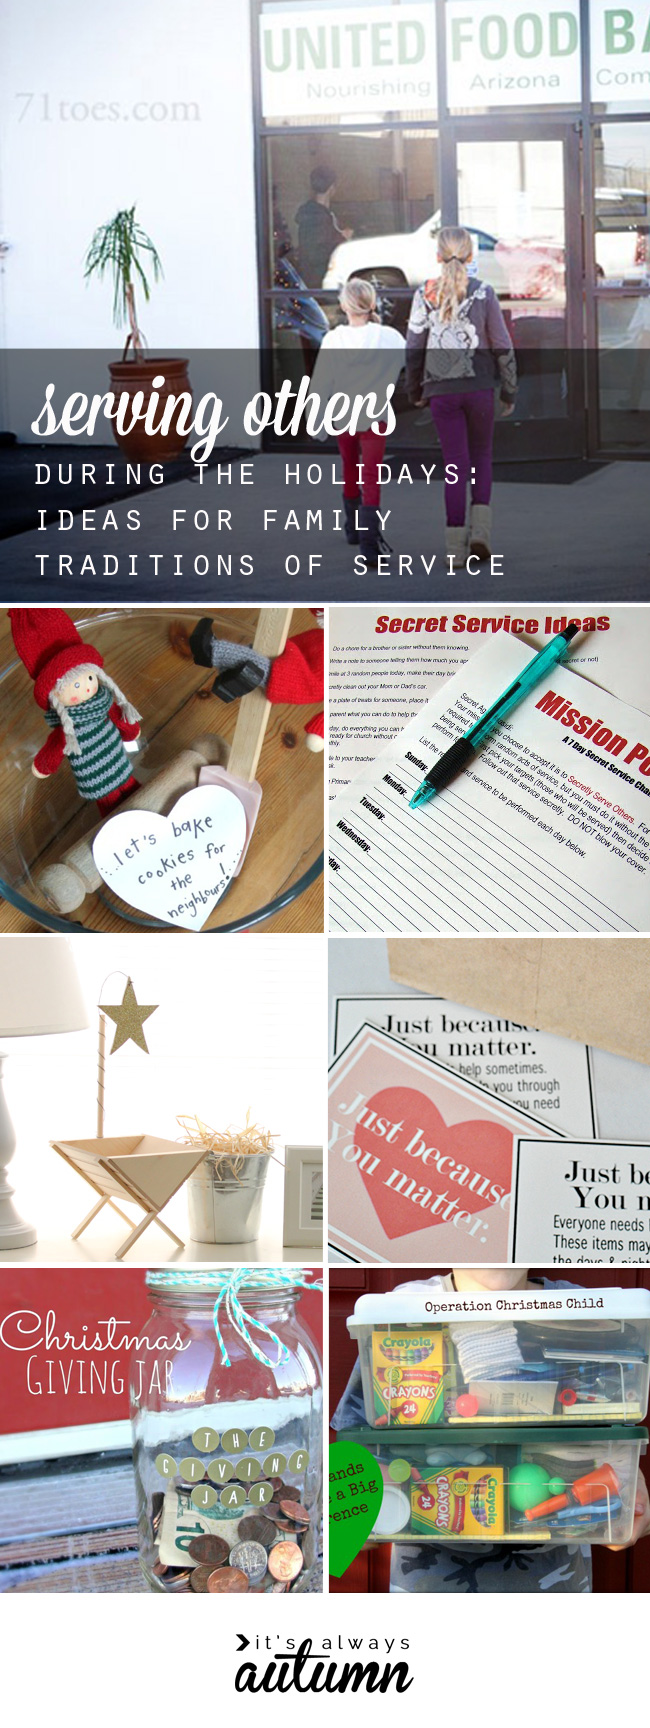 Scrapbook ideas for elderly - Focus On Giving Not Getting This Holiday Season With These Thanksgiving And Christmas Traditions Of